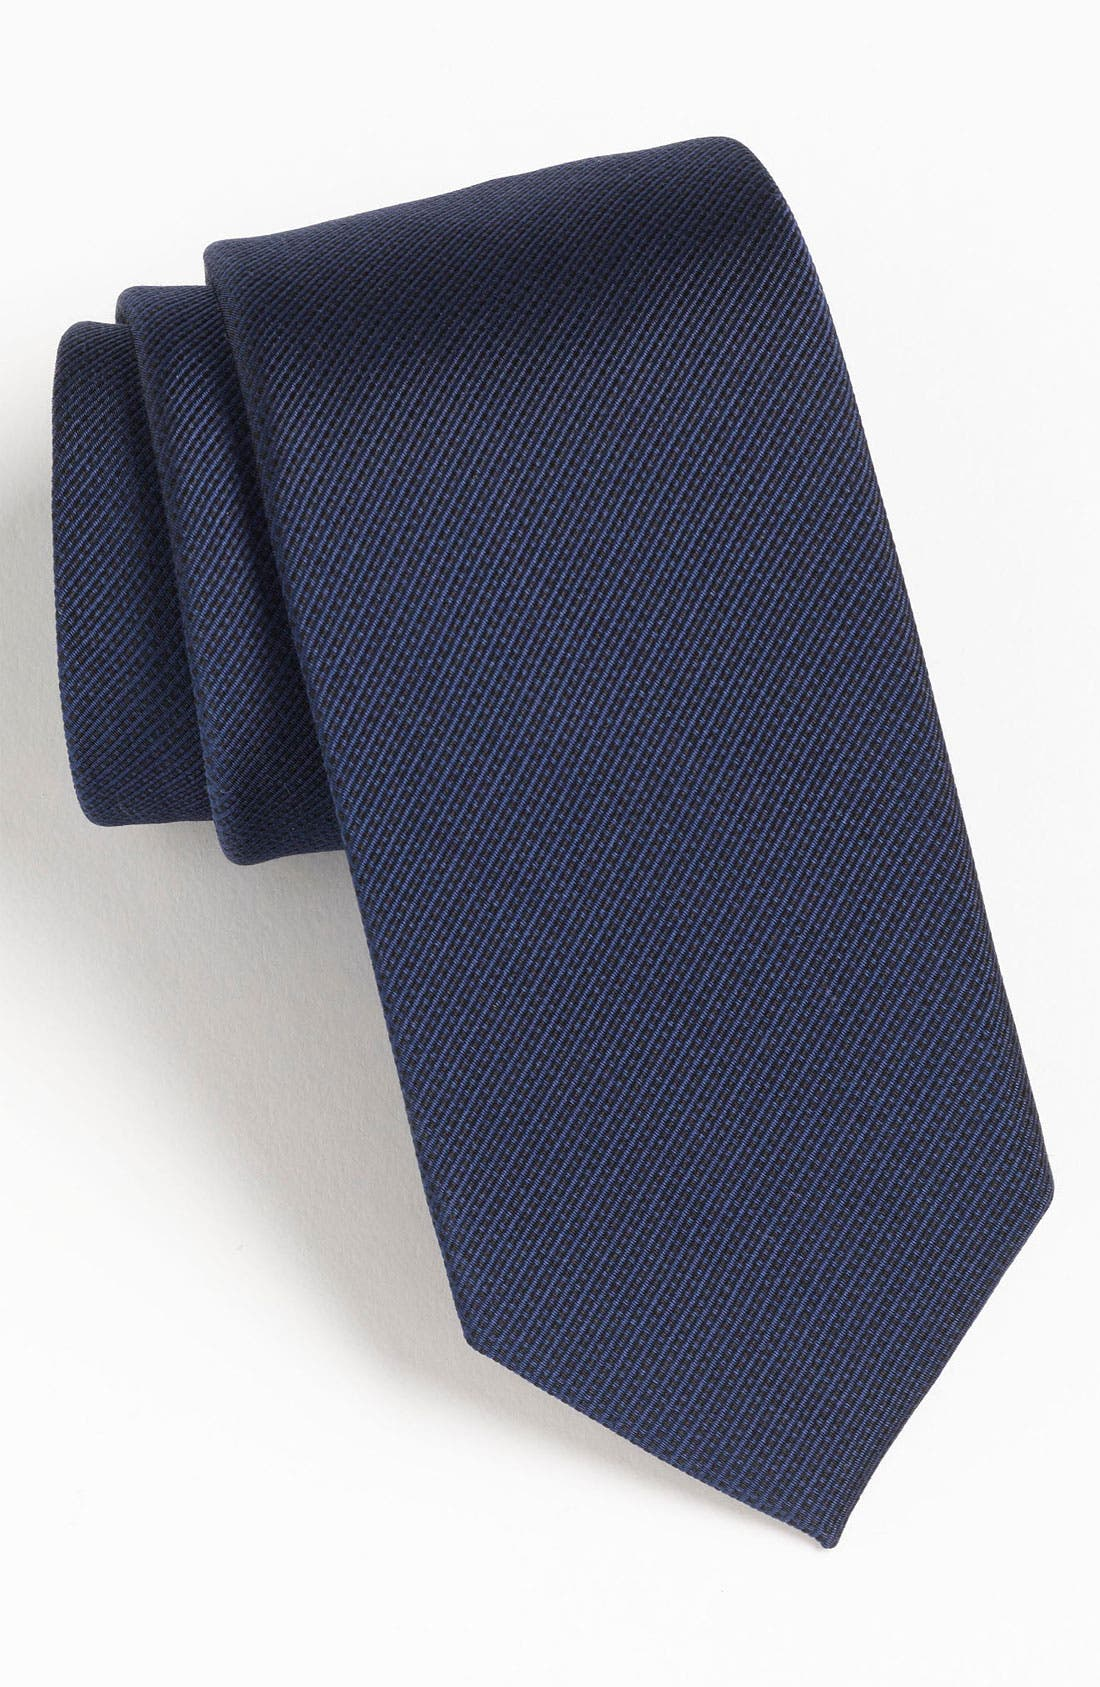 Alternate Image 1 Selected - The Rail Silk Woven Tie